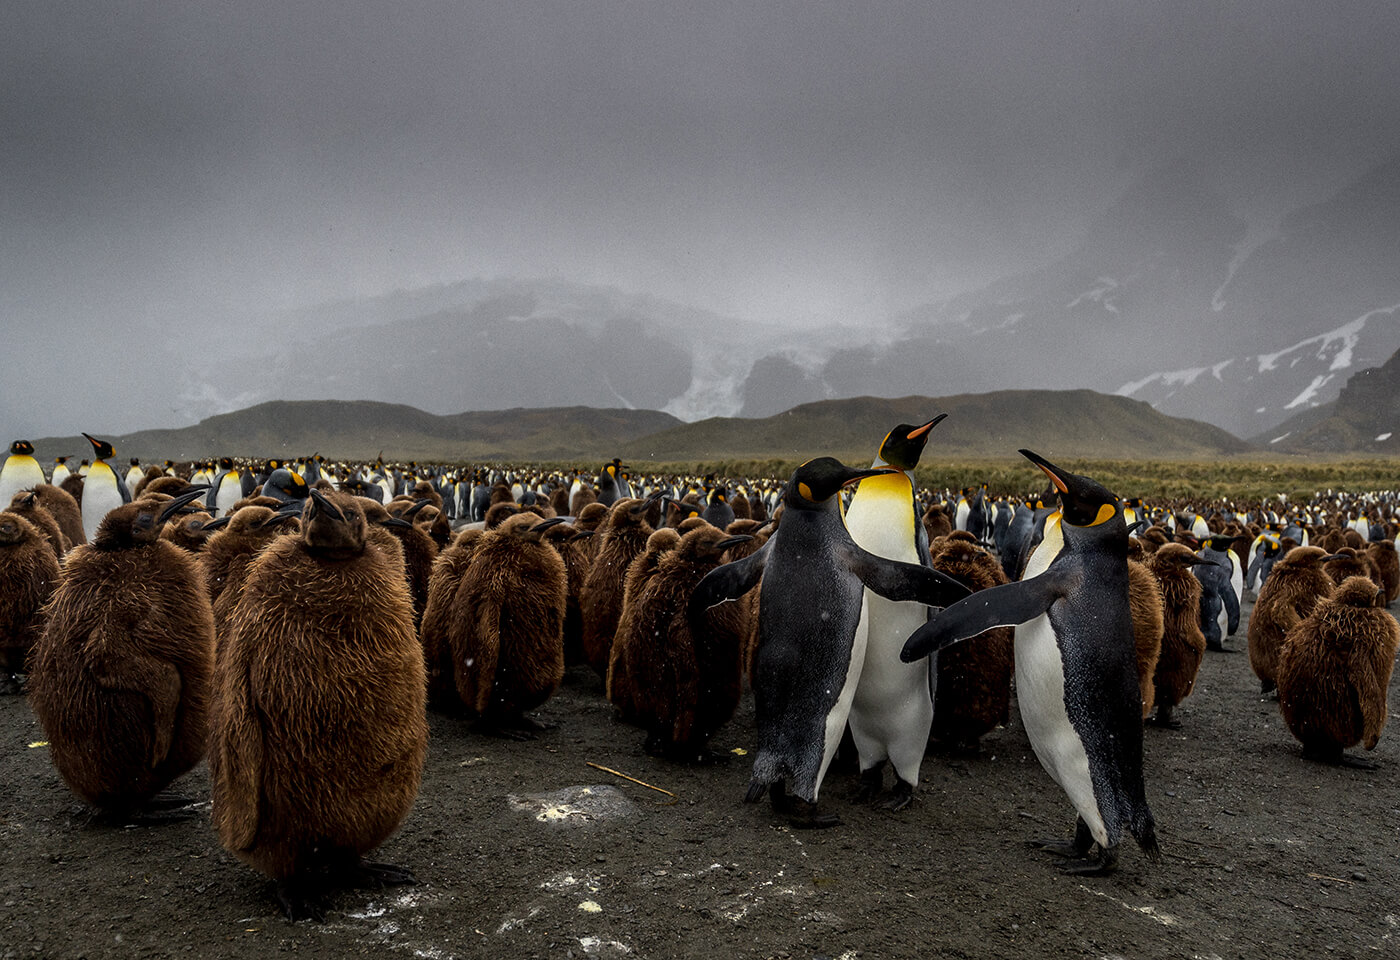 Landscape image of penguins